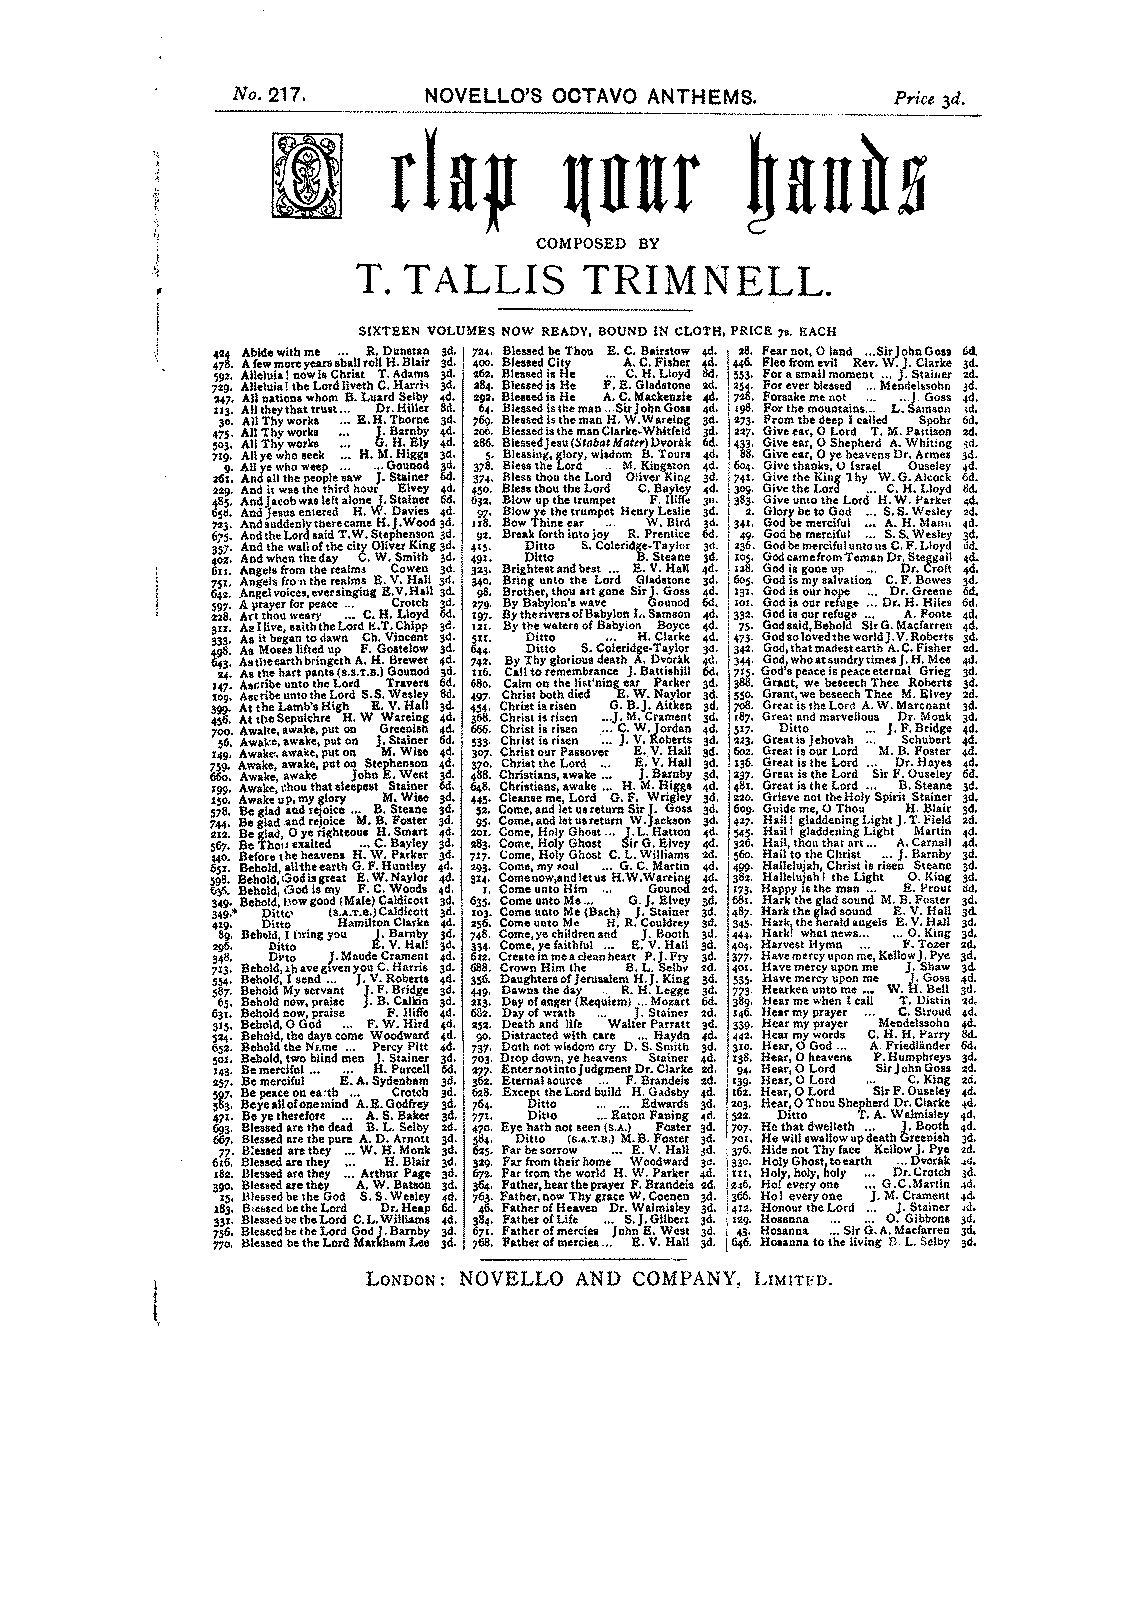 SIBLEY1802.19604.21a2-39087011618206hands Trimnell.pdf